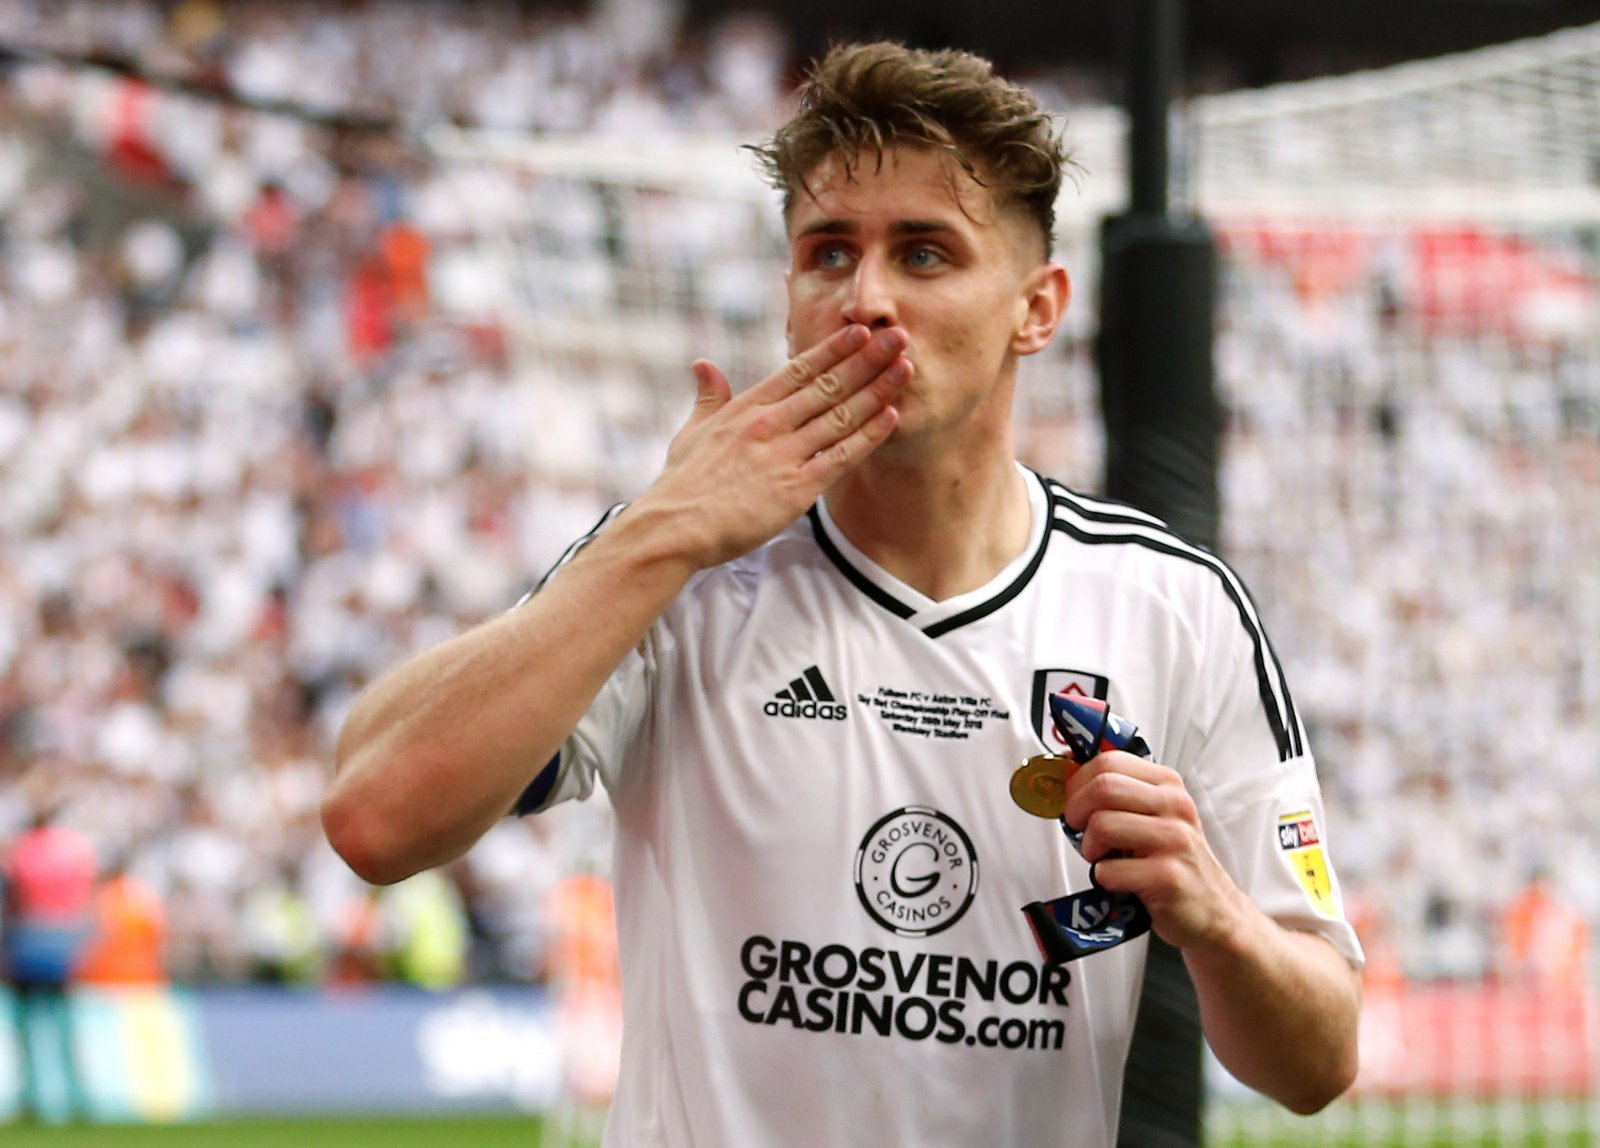 West Ham should have gone all out to sign this Fulham star over the summer